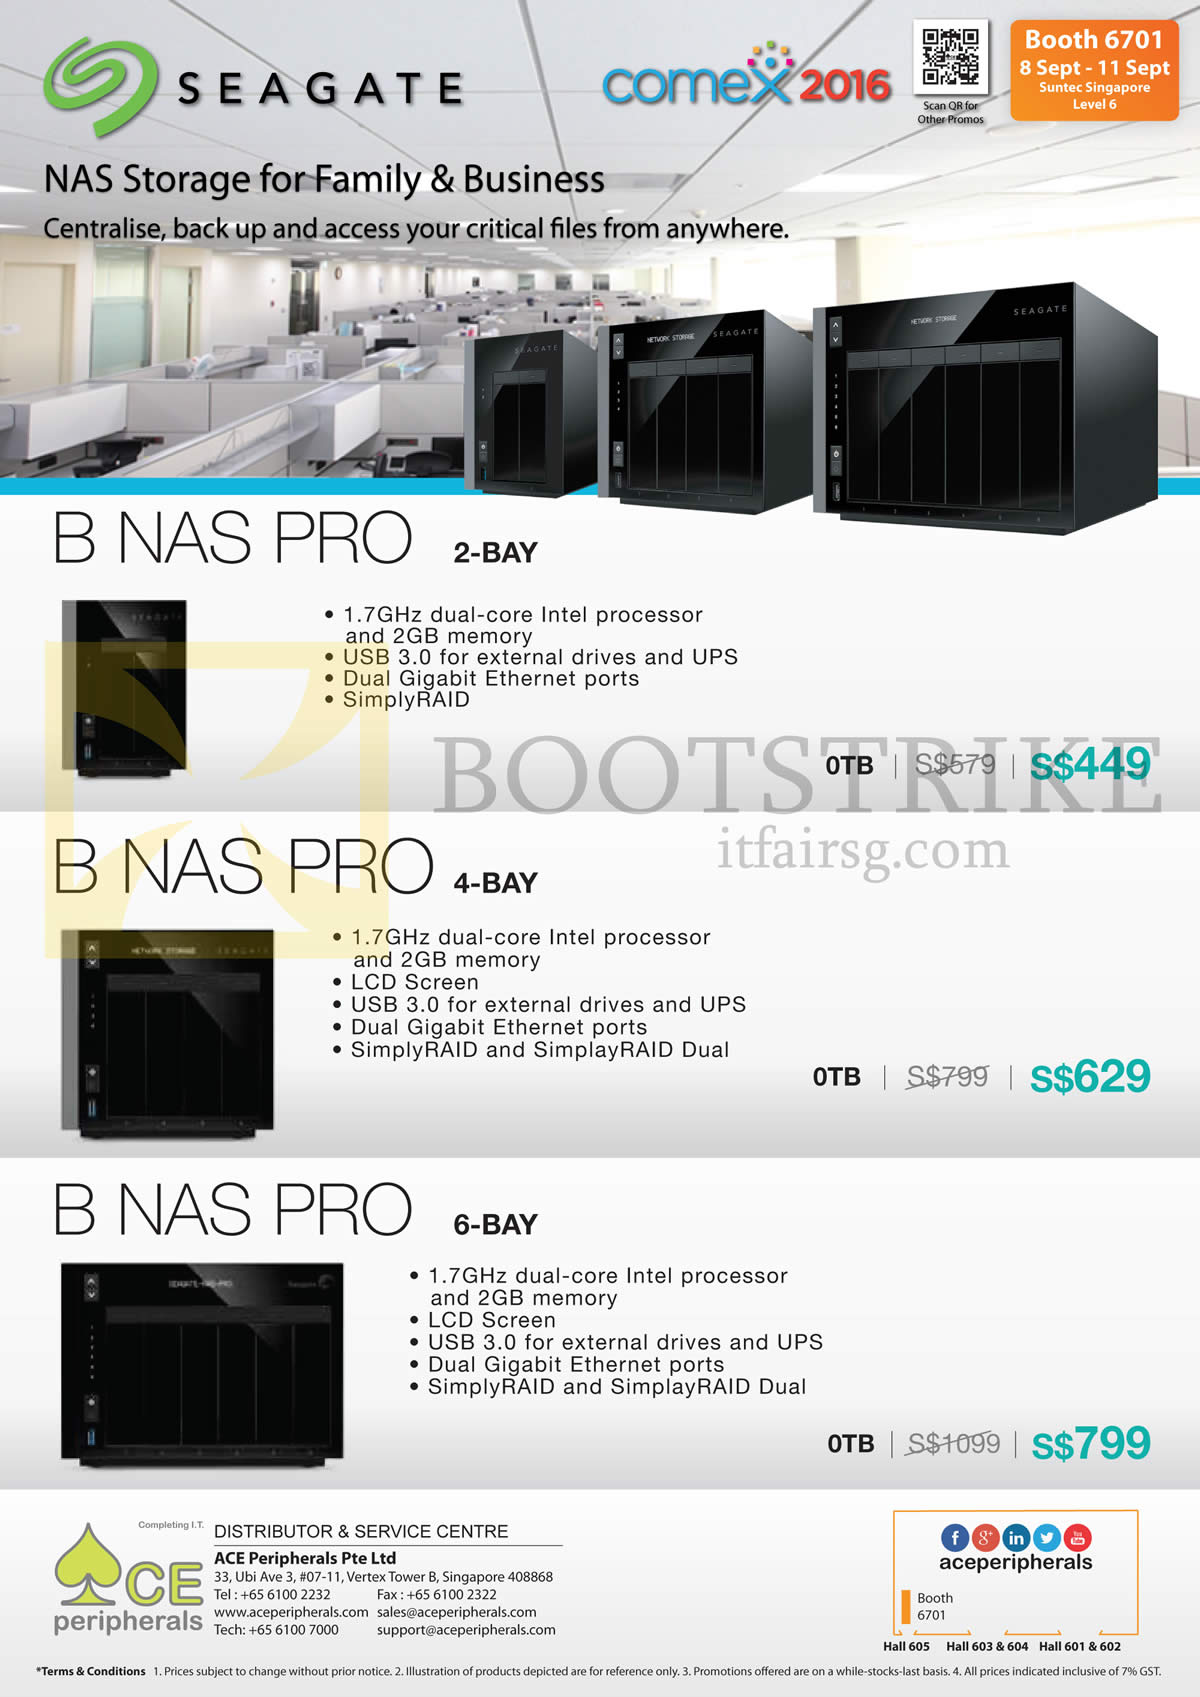 COMEX 2016 price list image brochure of Ace Peripherals Seagate Storage NAS Pro 2 Bay, 4 Bay, 6 Bay